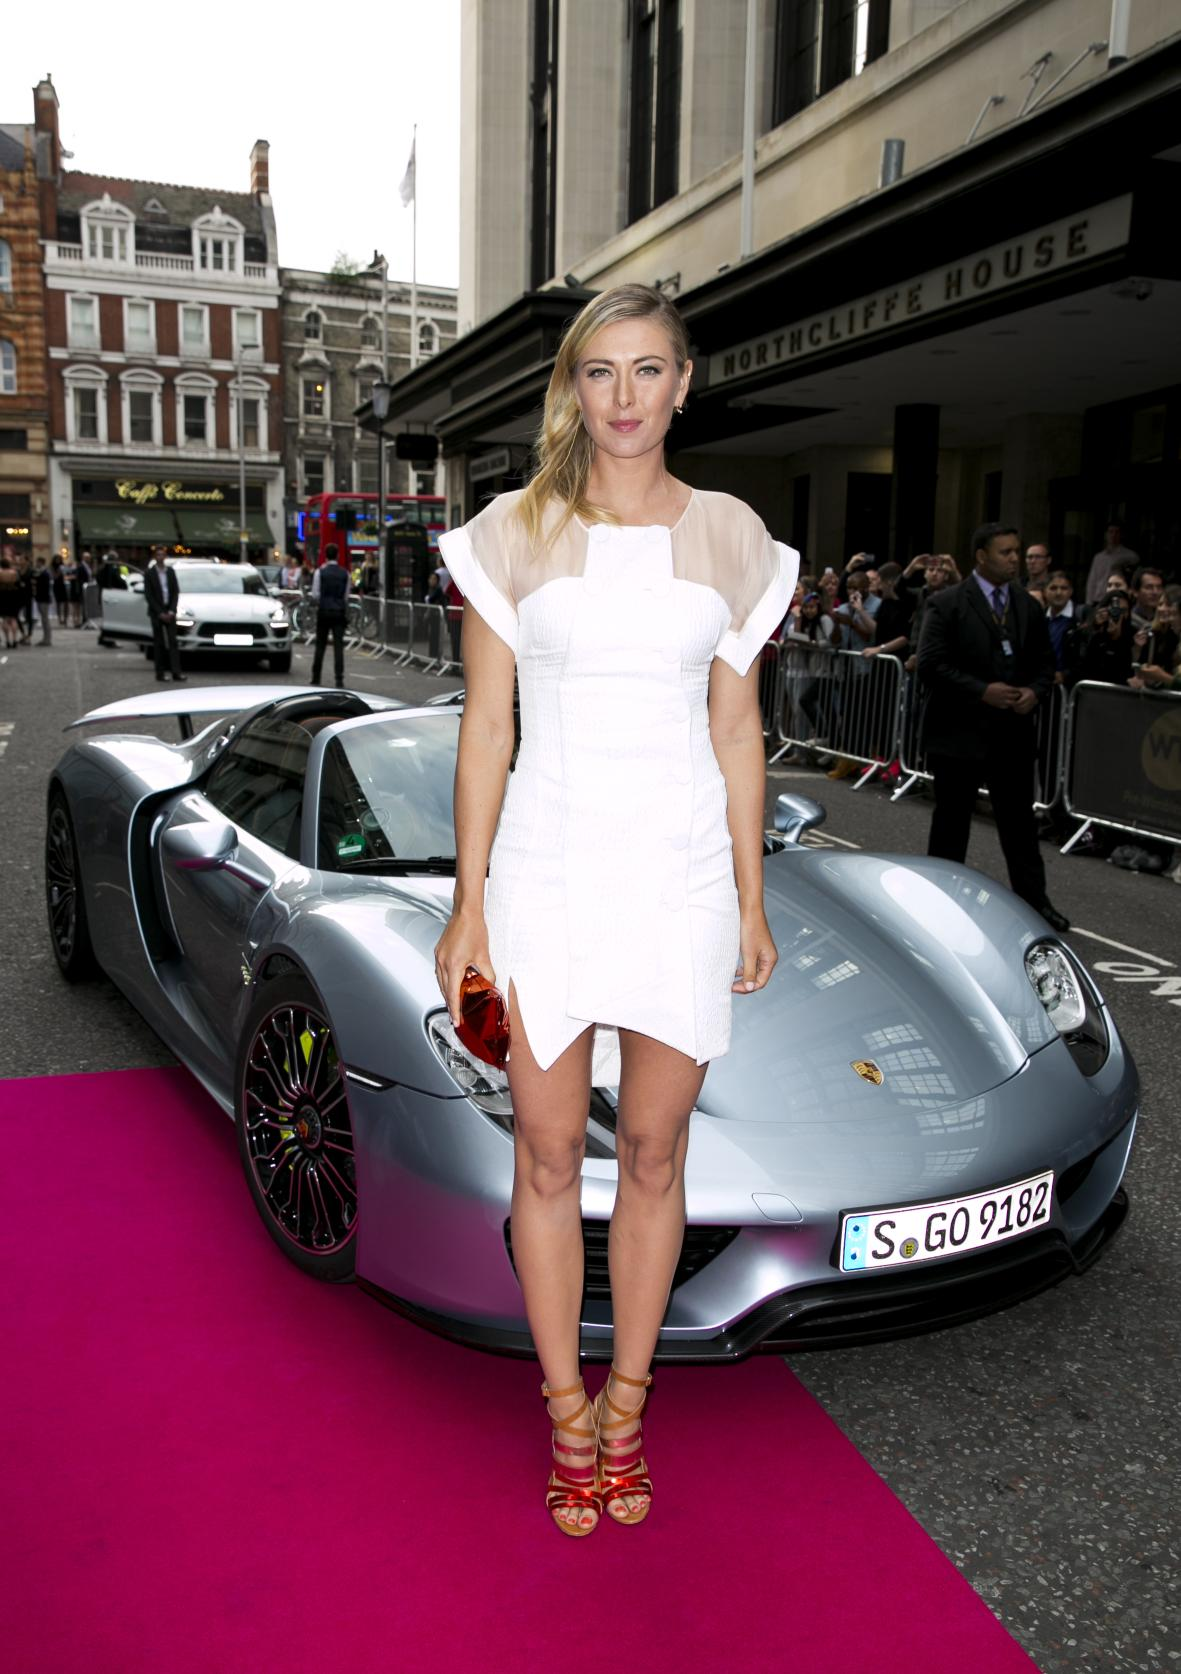 Maria_Sharapova_and_the_Porsche_918_Spyder_arrive_at_the WTA_Kensington_Roof_Gardens